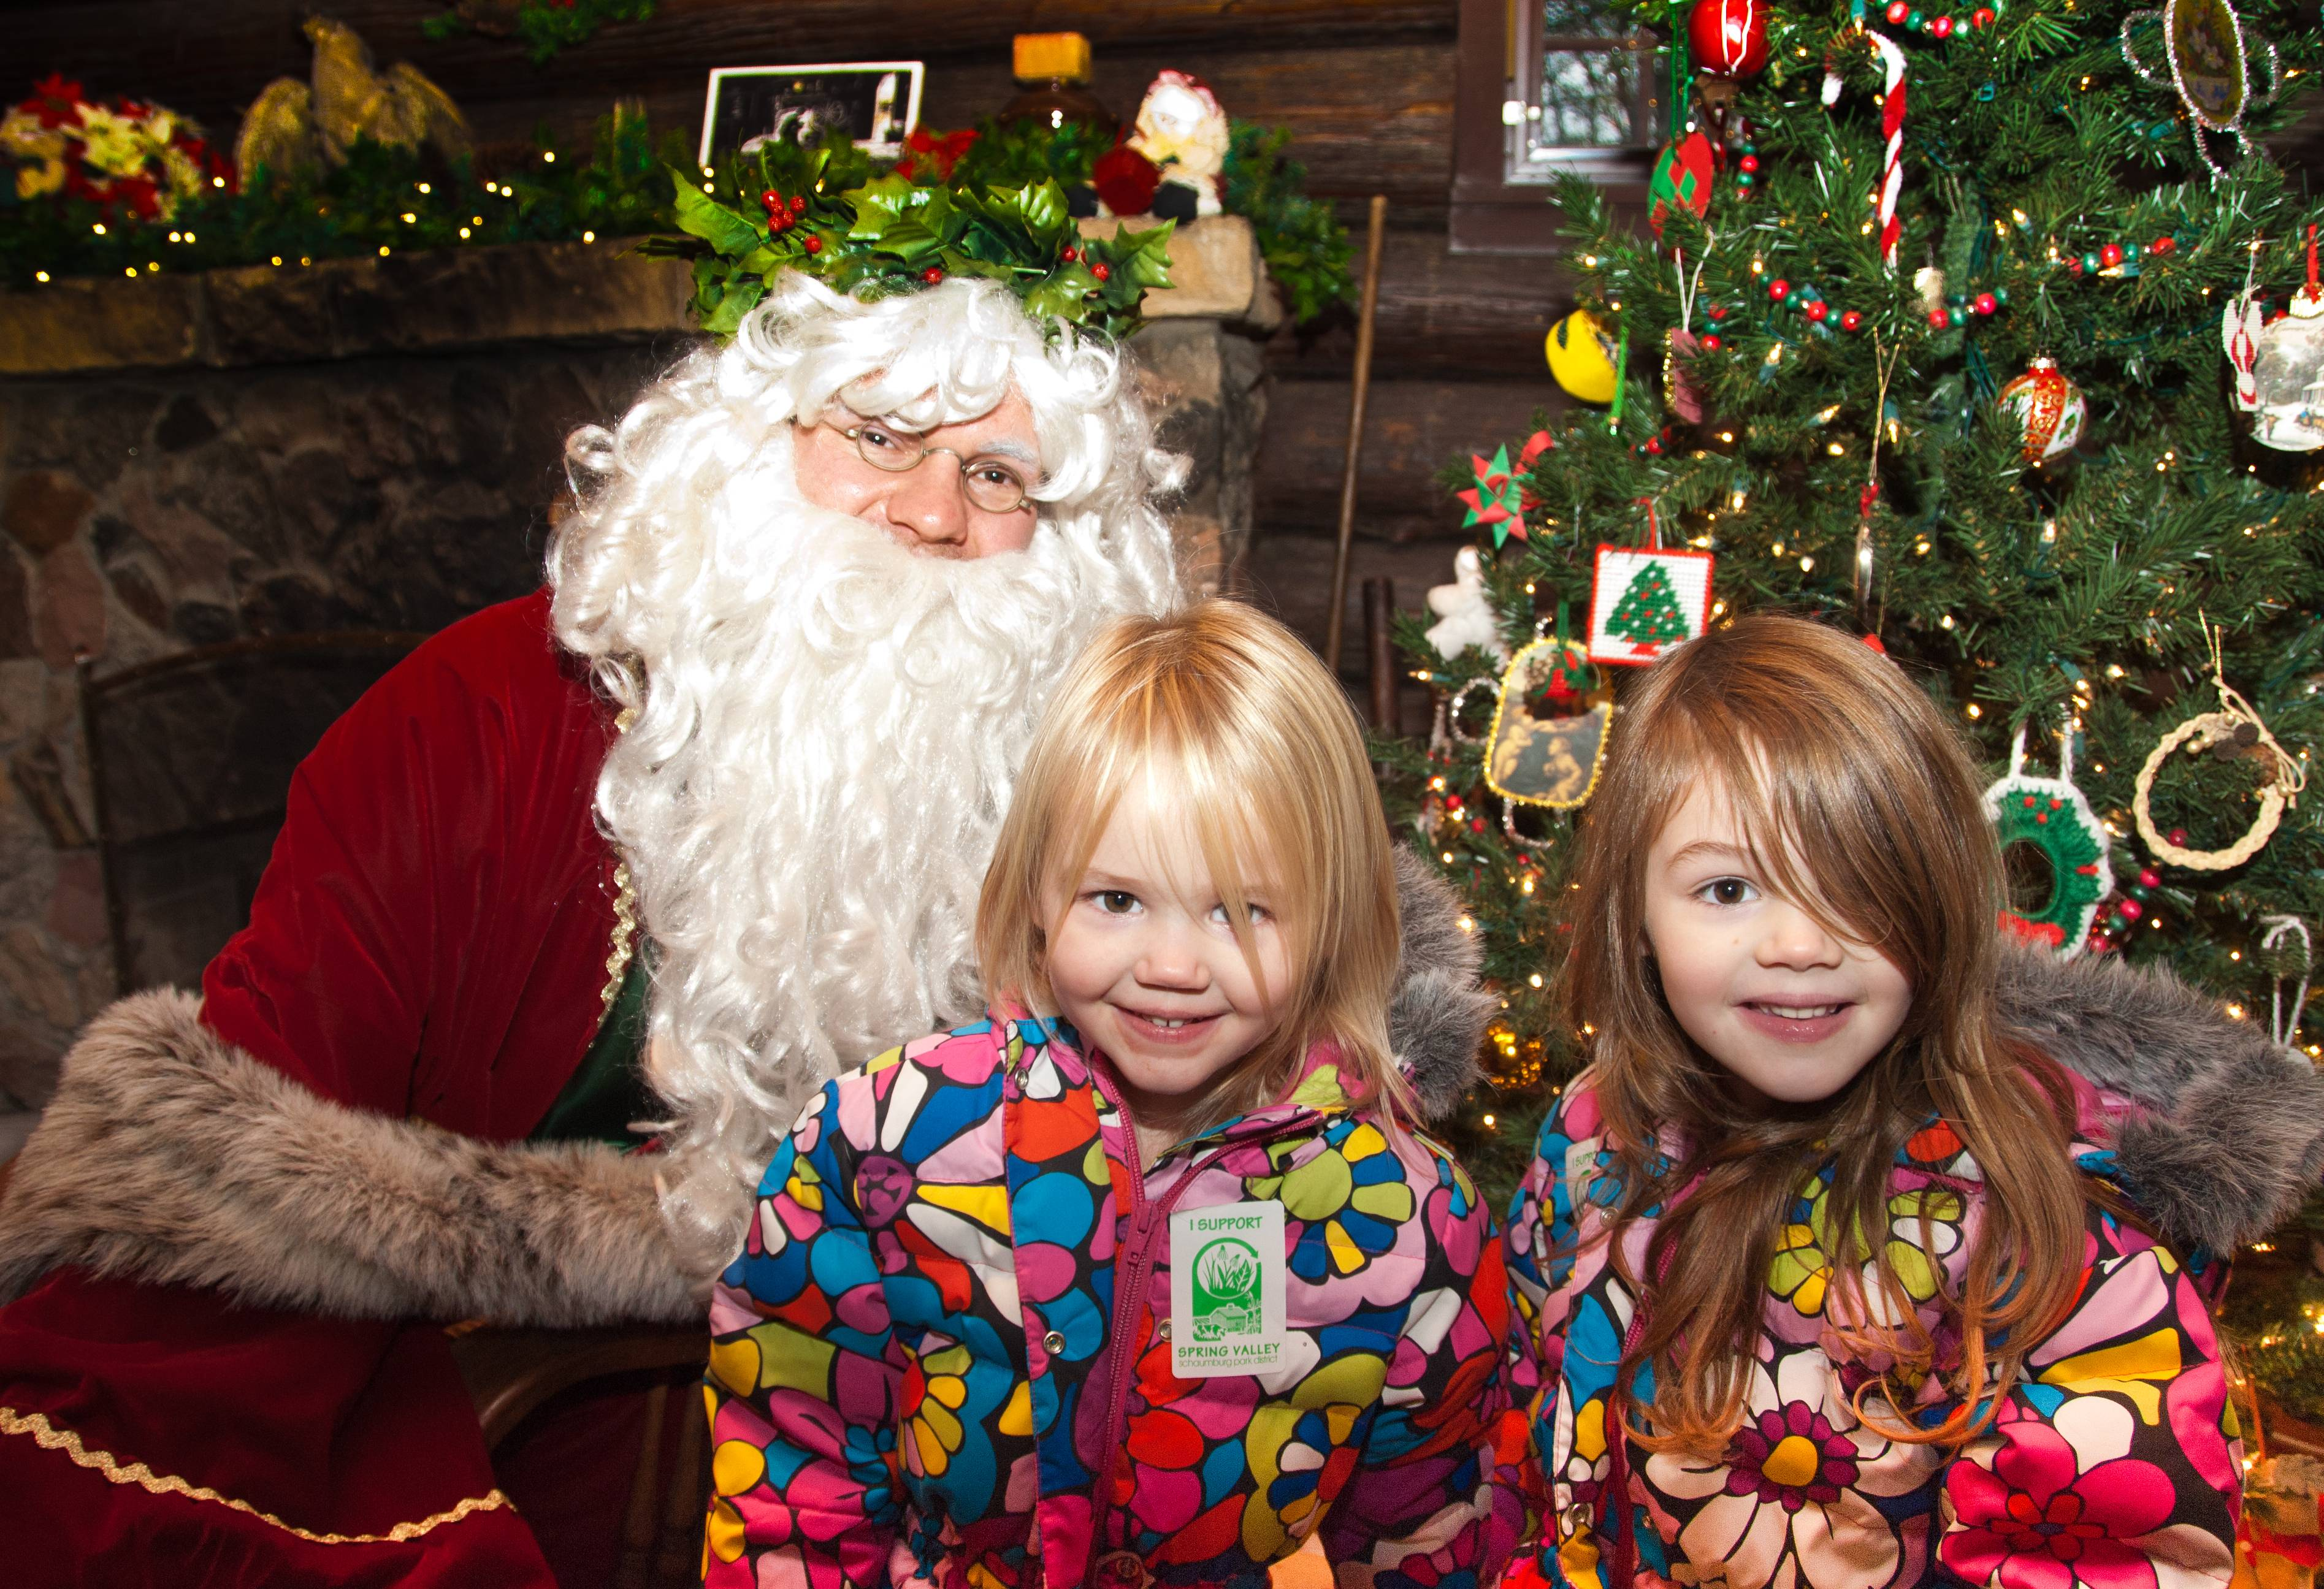 A traditional St. Nicholas meets with children at last year's Christmas in the Valley at Spring Valley's Merkle Log Cabin.